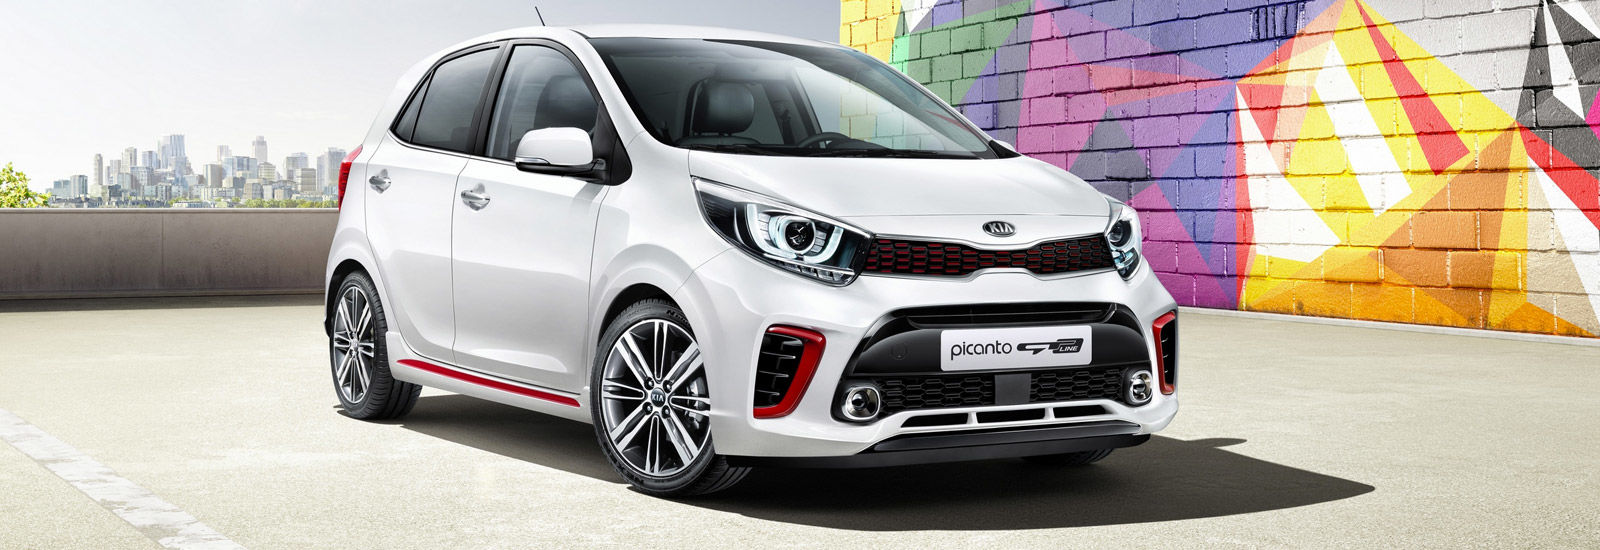 Picanto Front